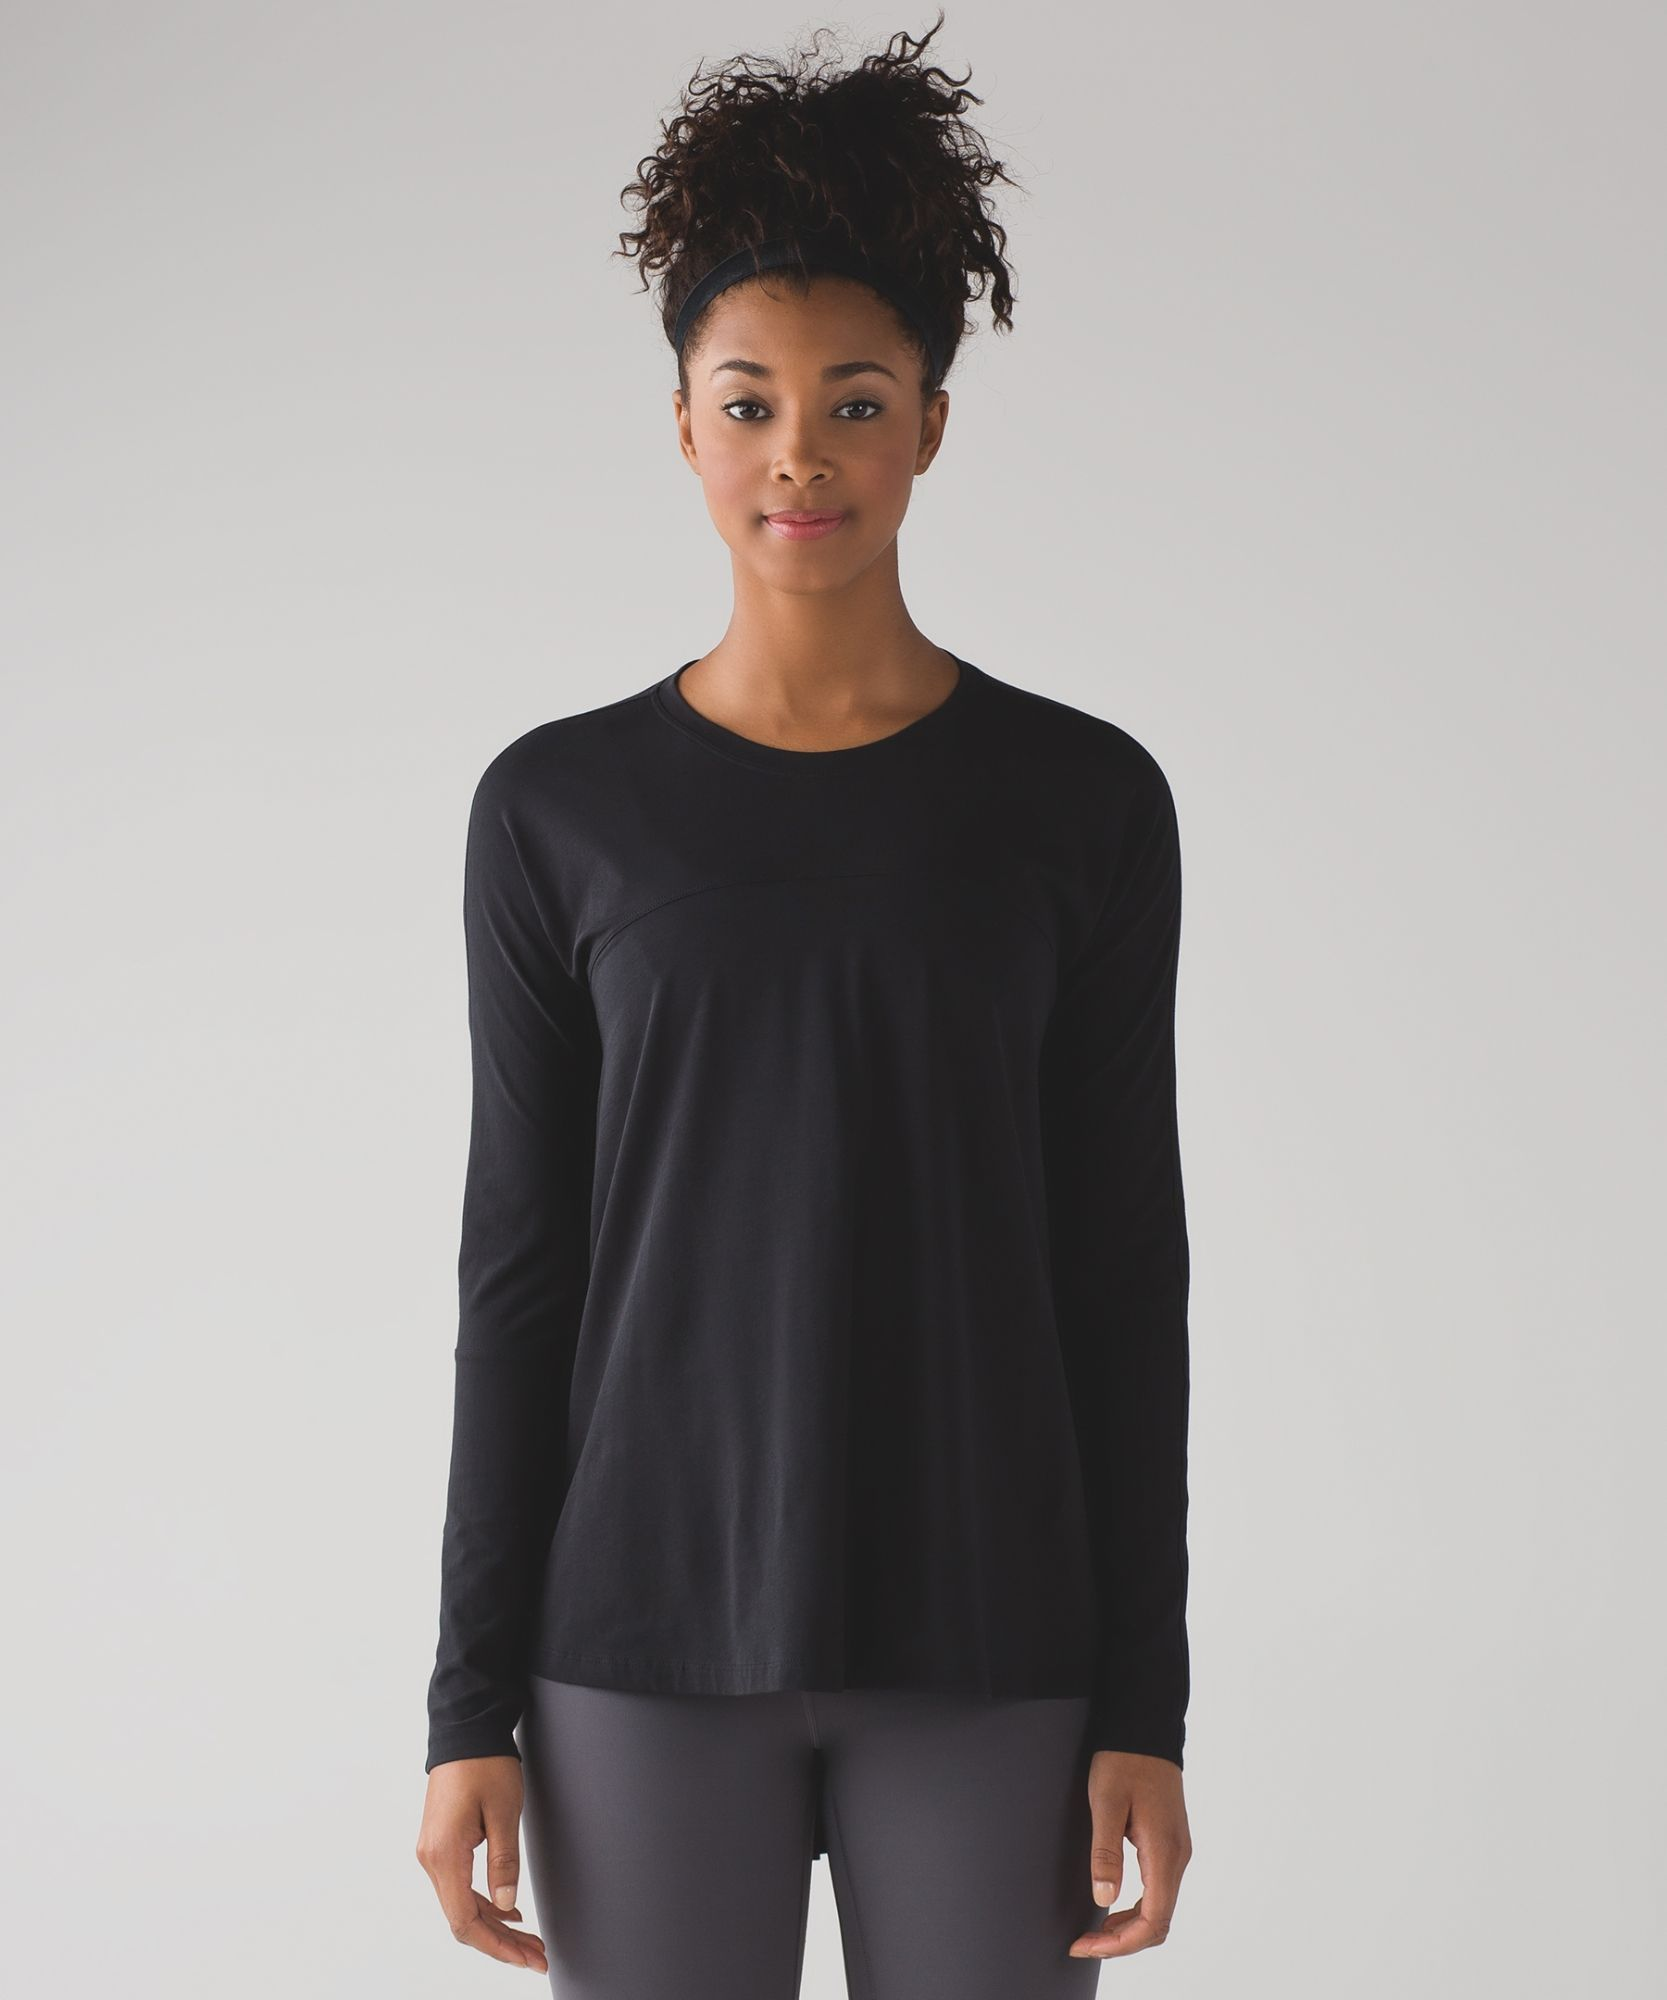 ac175ca33243 We designed this breathable long sleeve to throw on after a sweaty training  session.